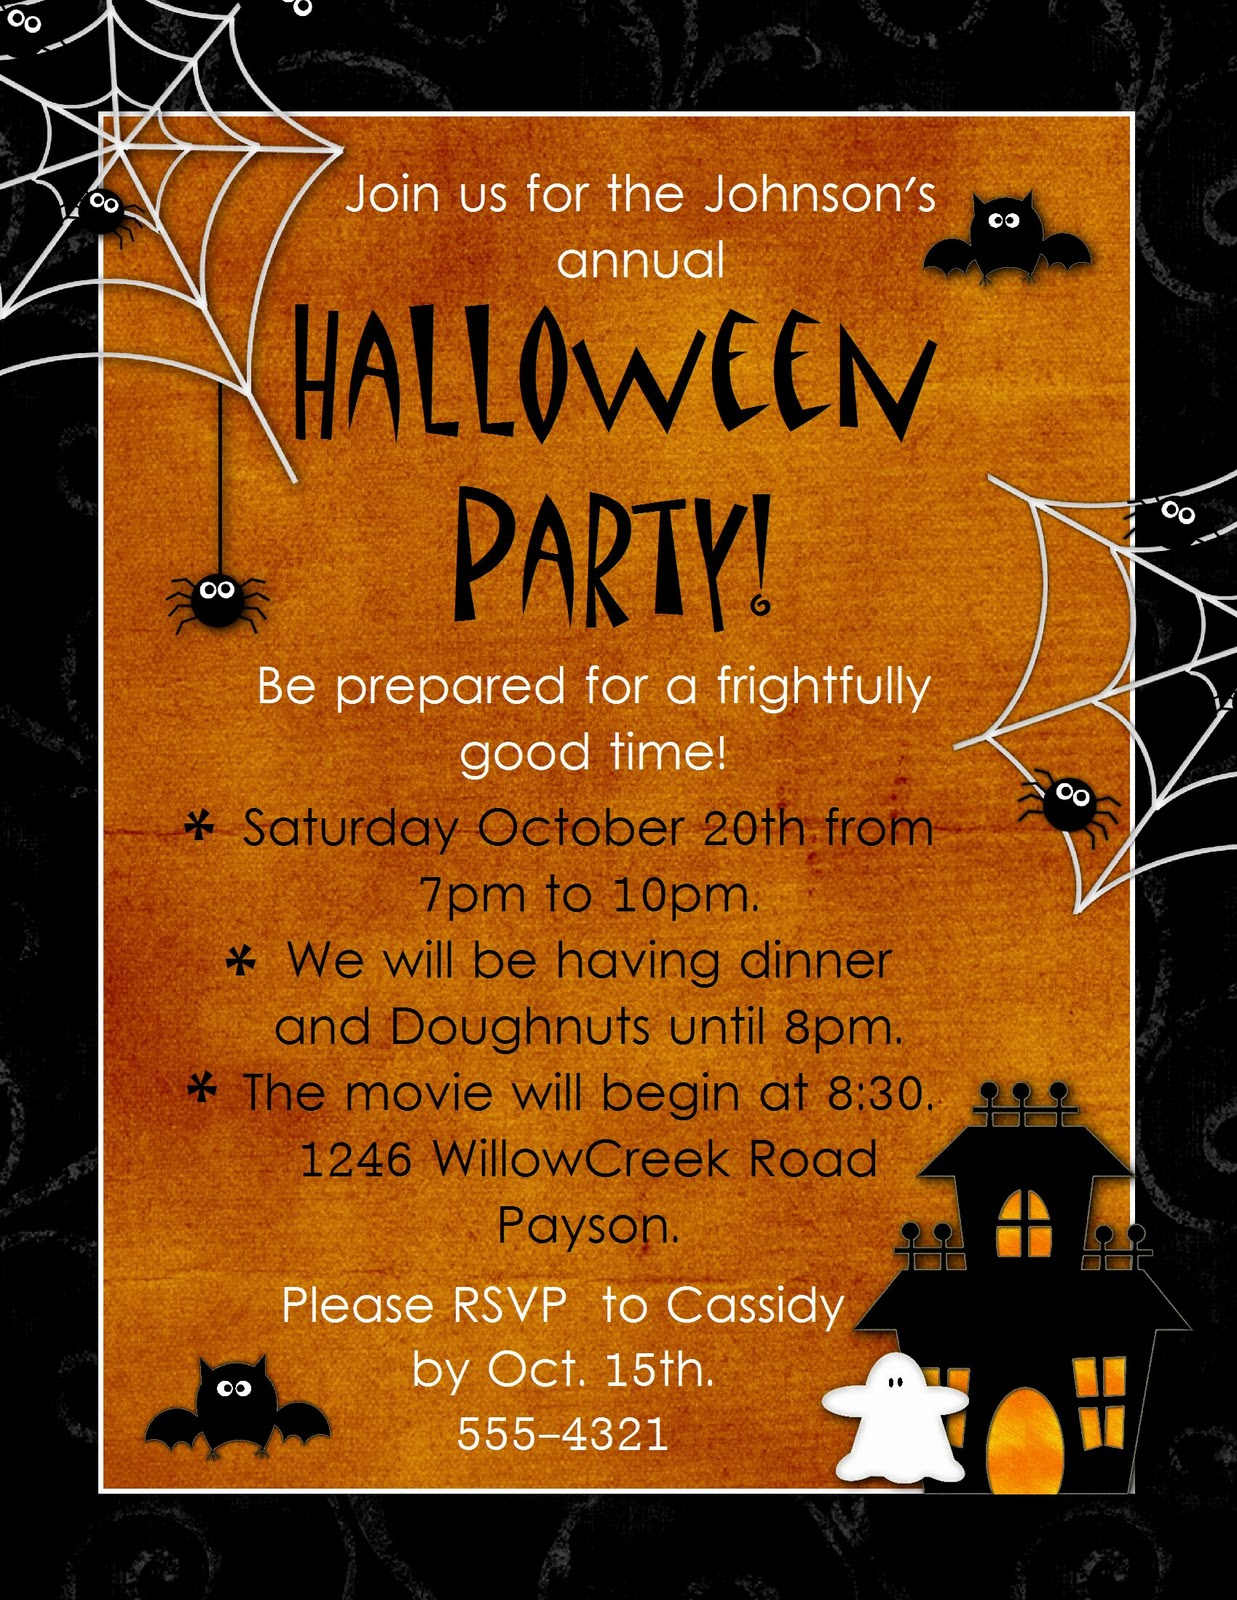 Halloween Potluck Invitation Wording was awesome invitation sample